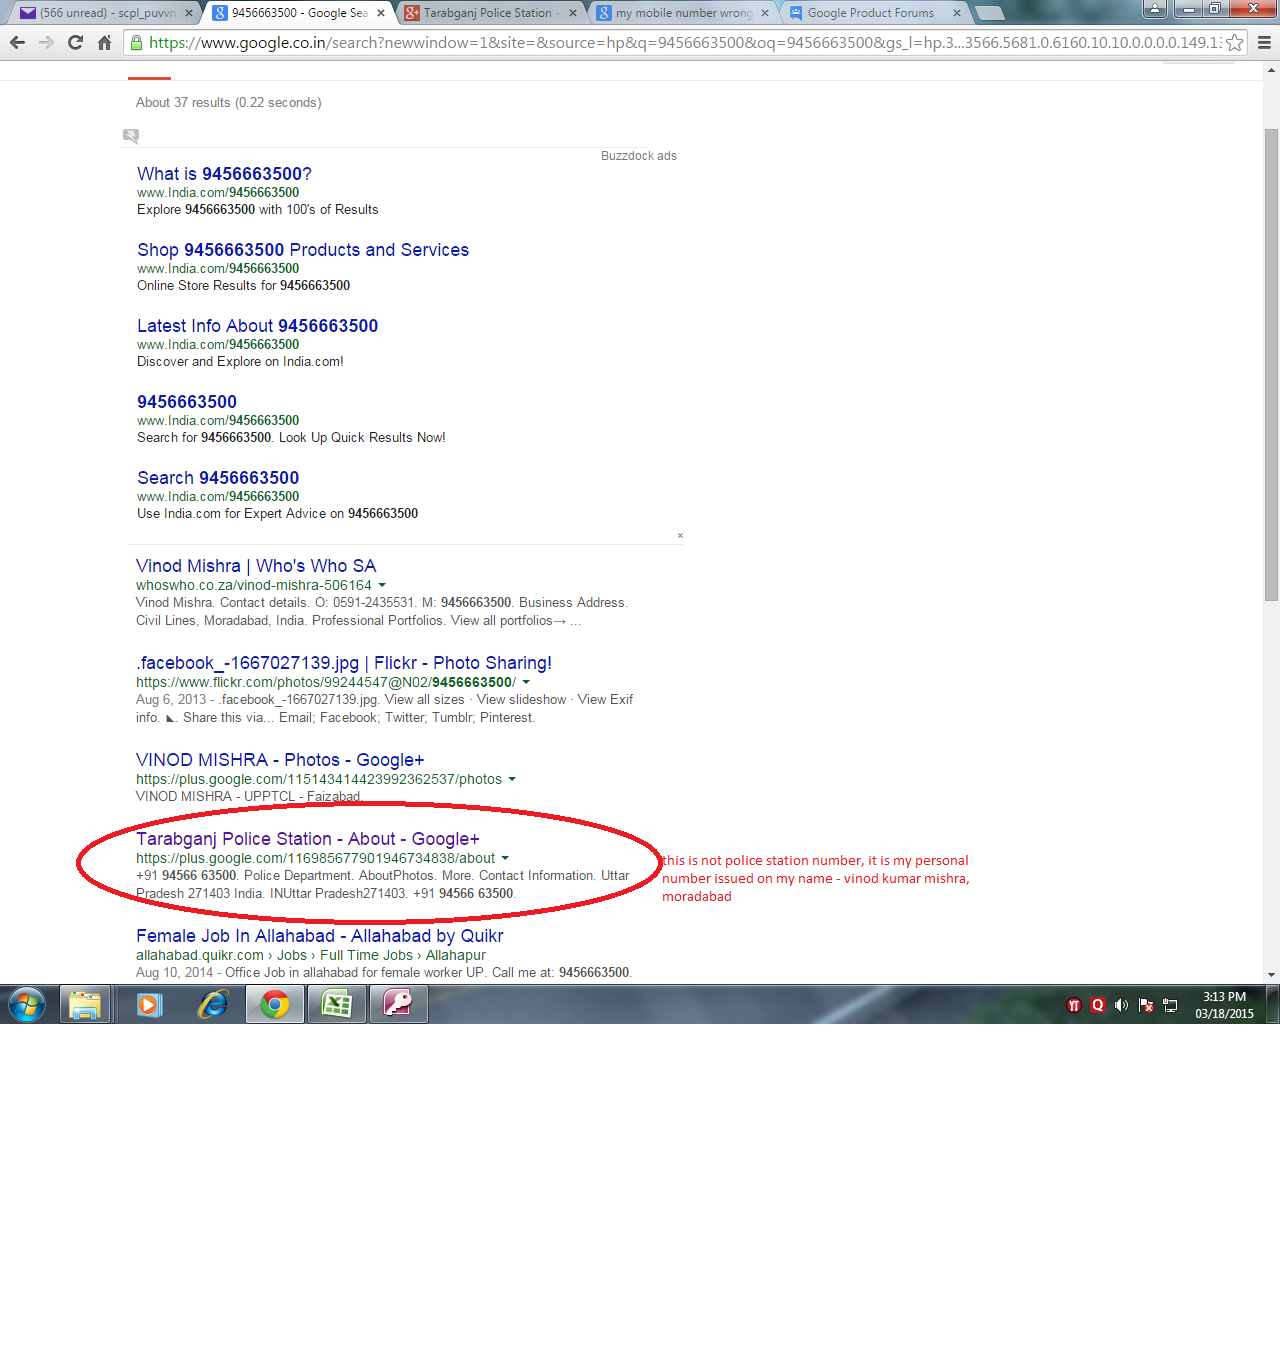 when i search my mobile number on google it shown Police staitaon